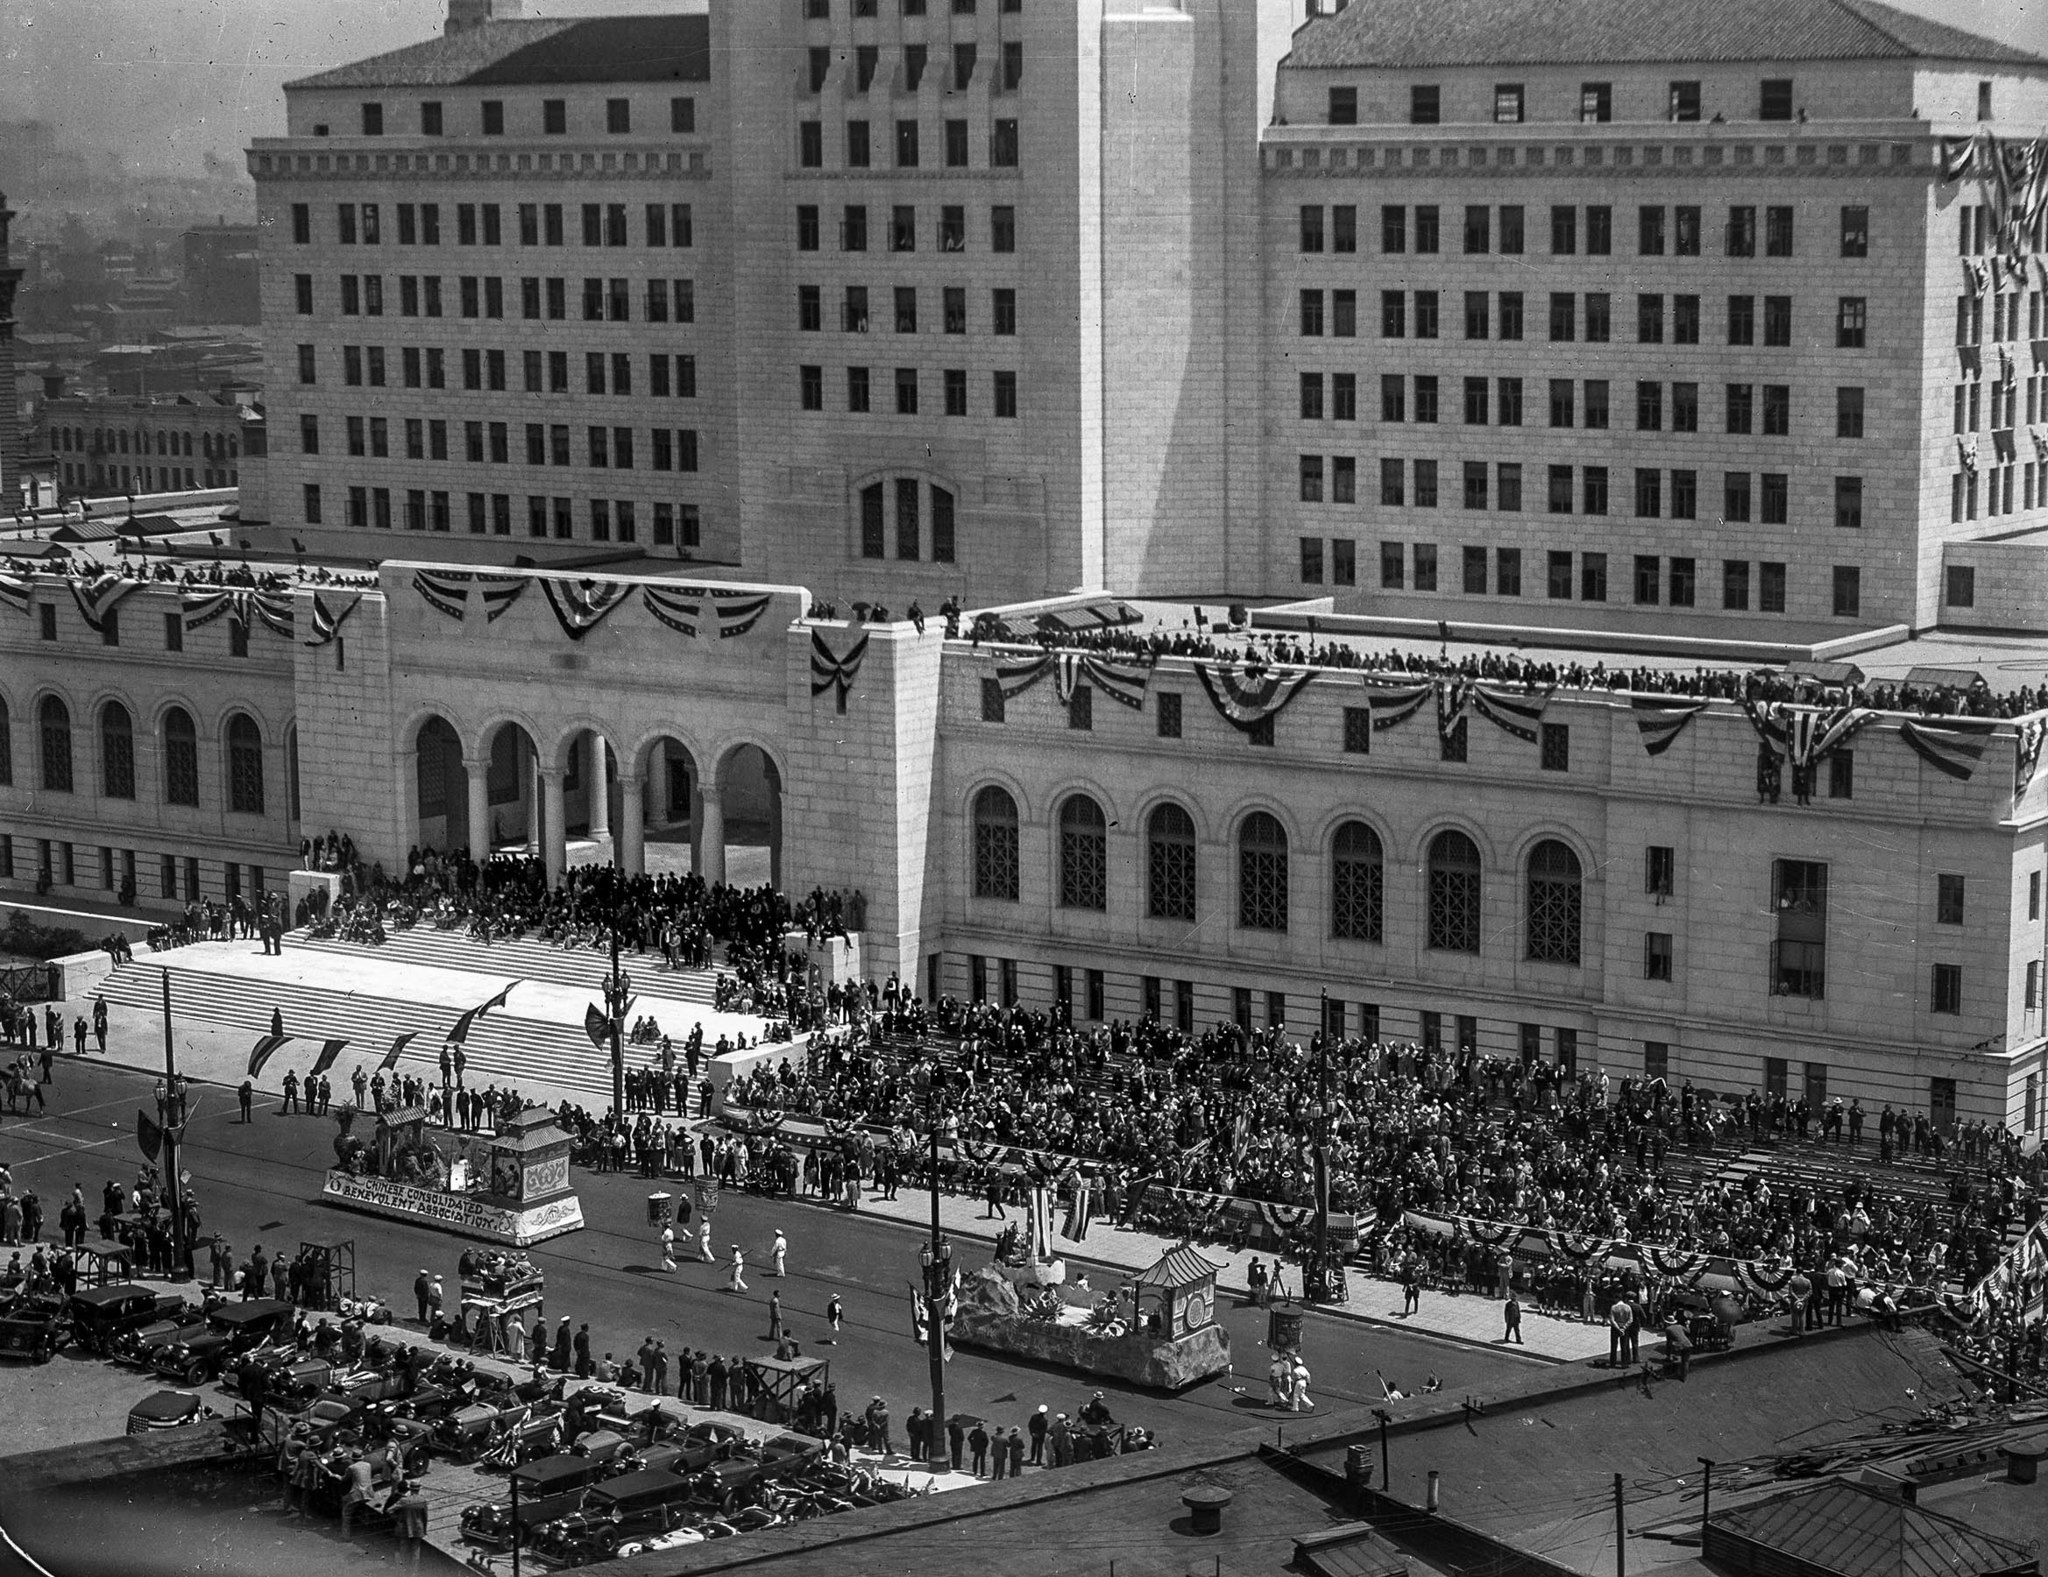 April 26, 1928: Parade on Spring St. during dedication of the new Los Angeles City Hall.